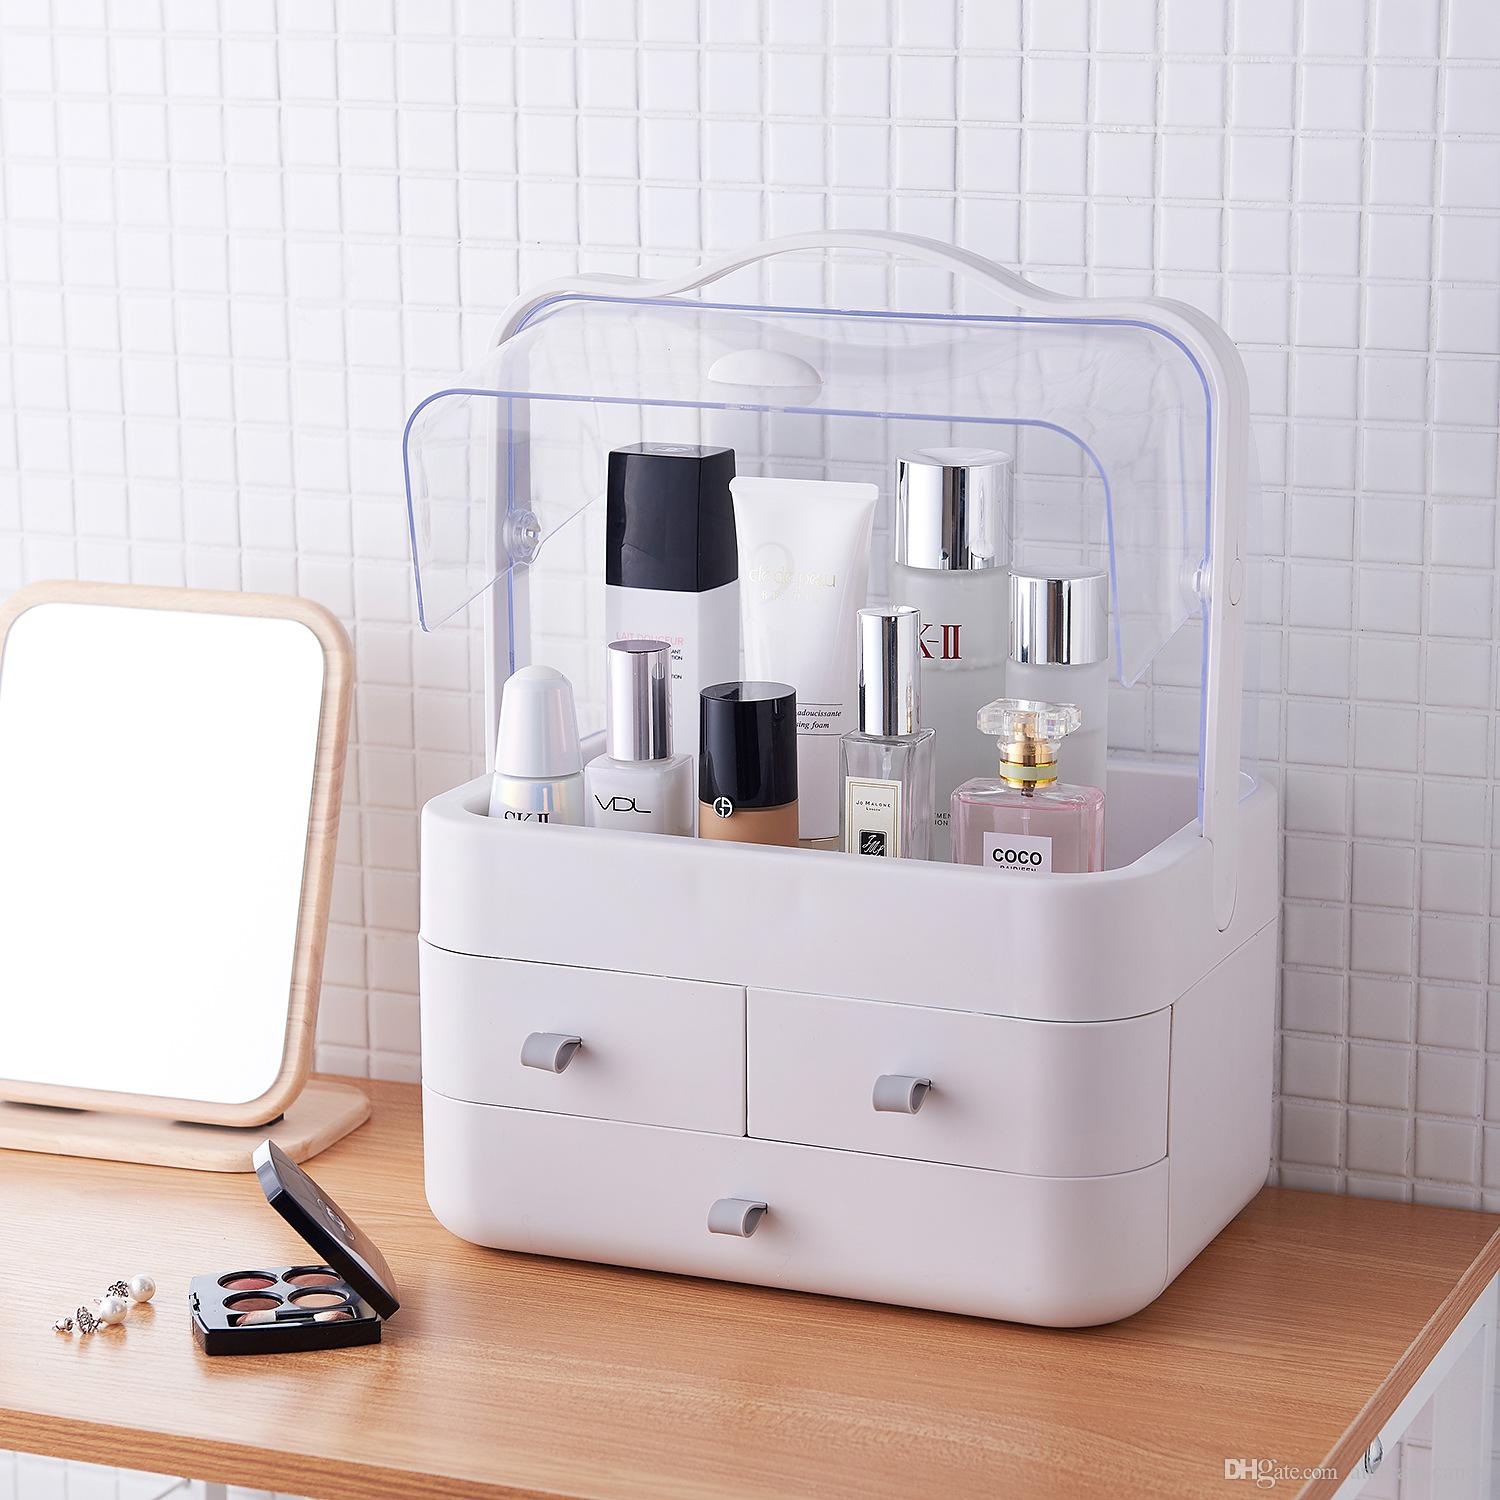 2019 Portable Makeup Storage Box With Holder Superior Dust Proof Cosmetic Organizer Water Proof For Bathroom Dresser Vanity And Countertop From within dimensions 1500 X 1500